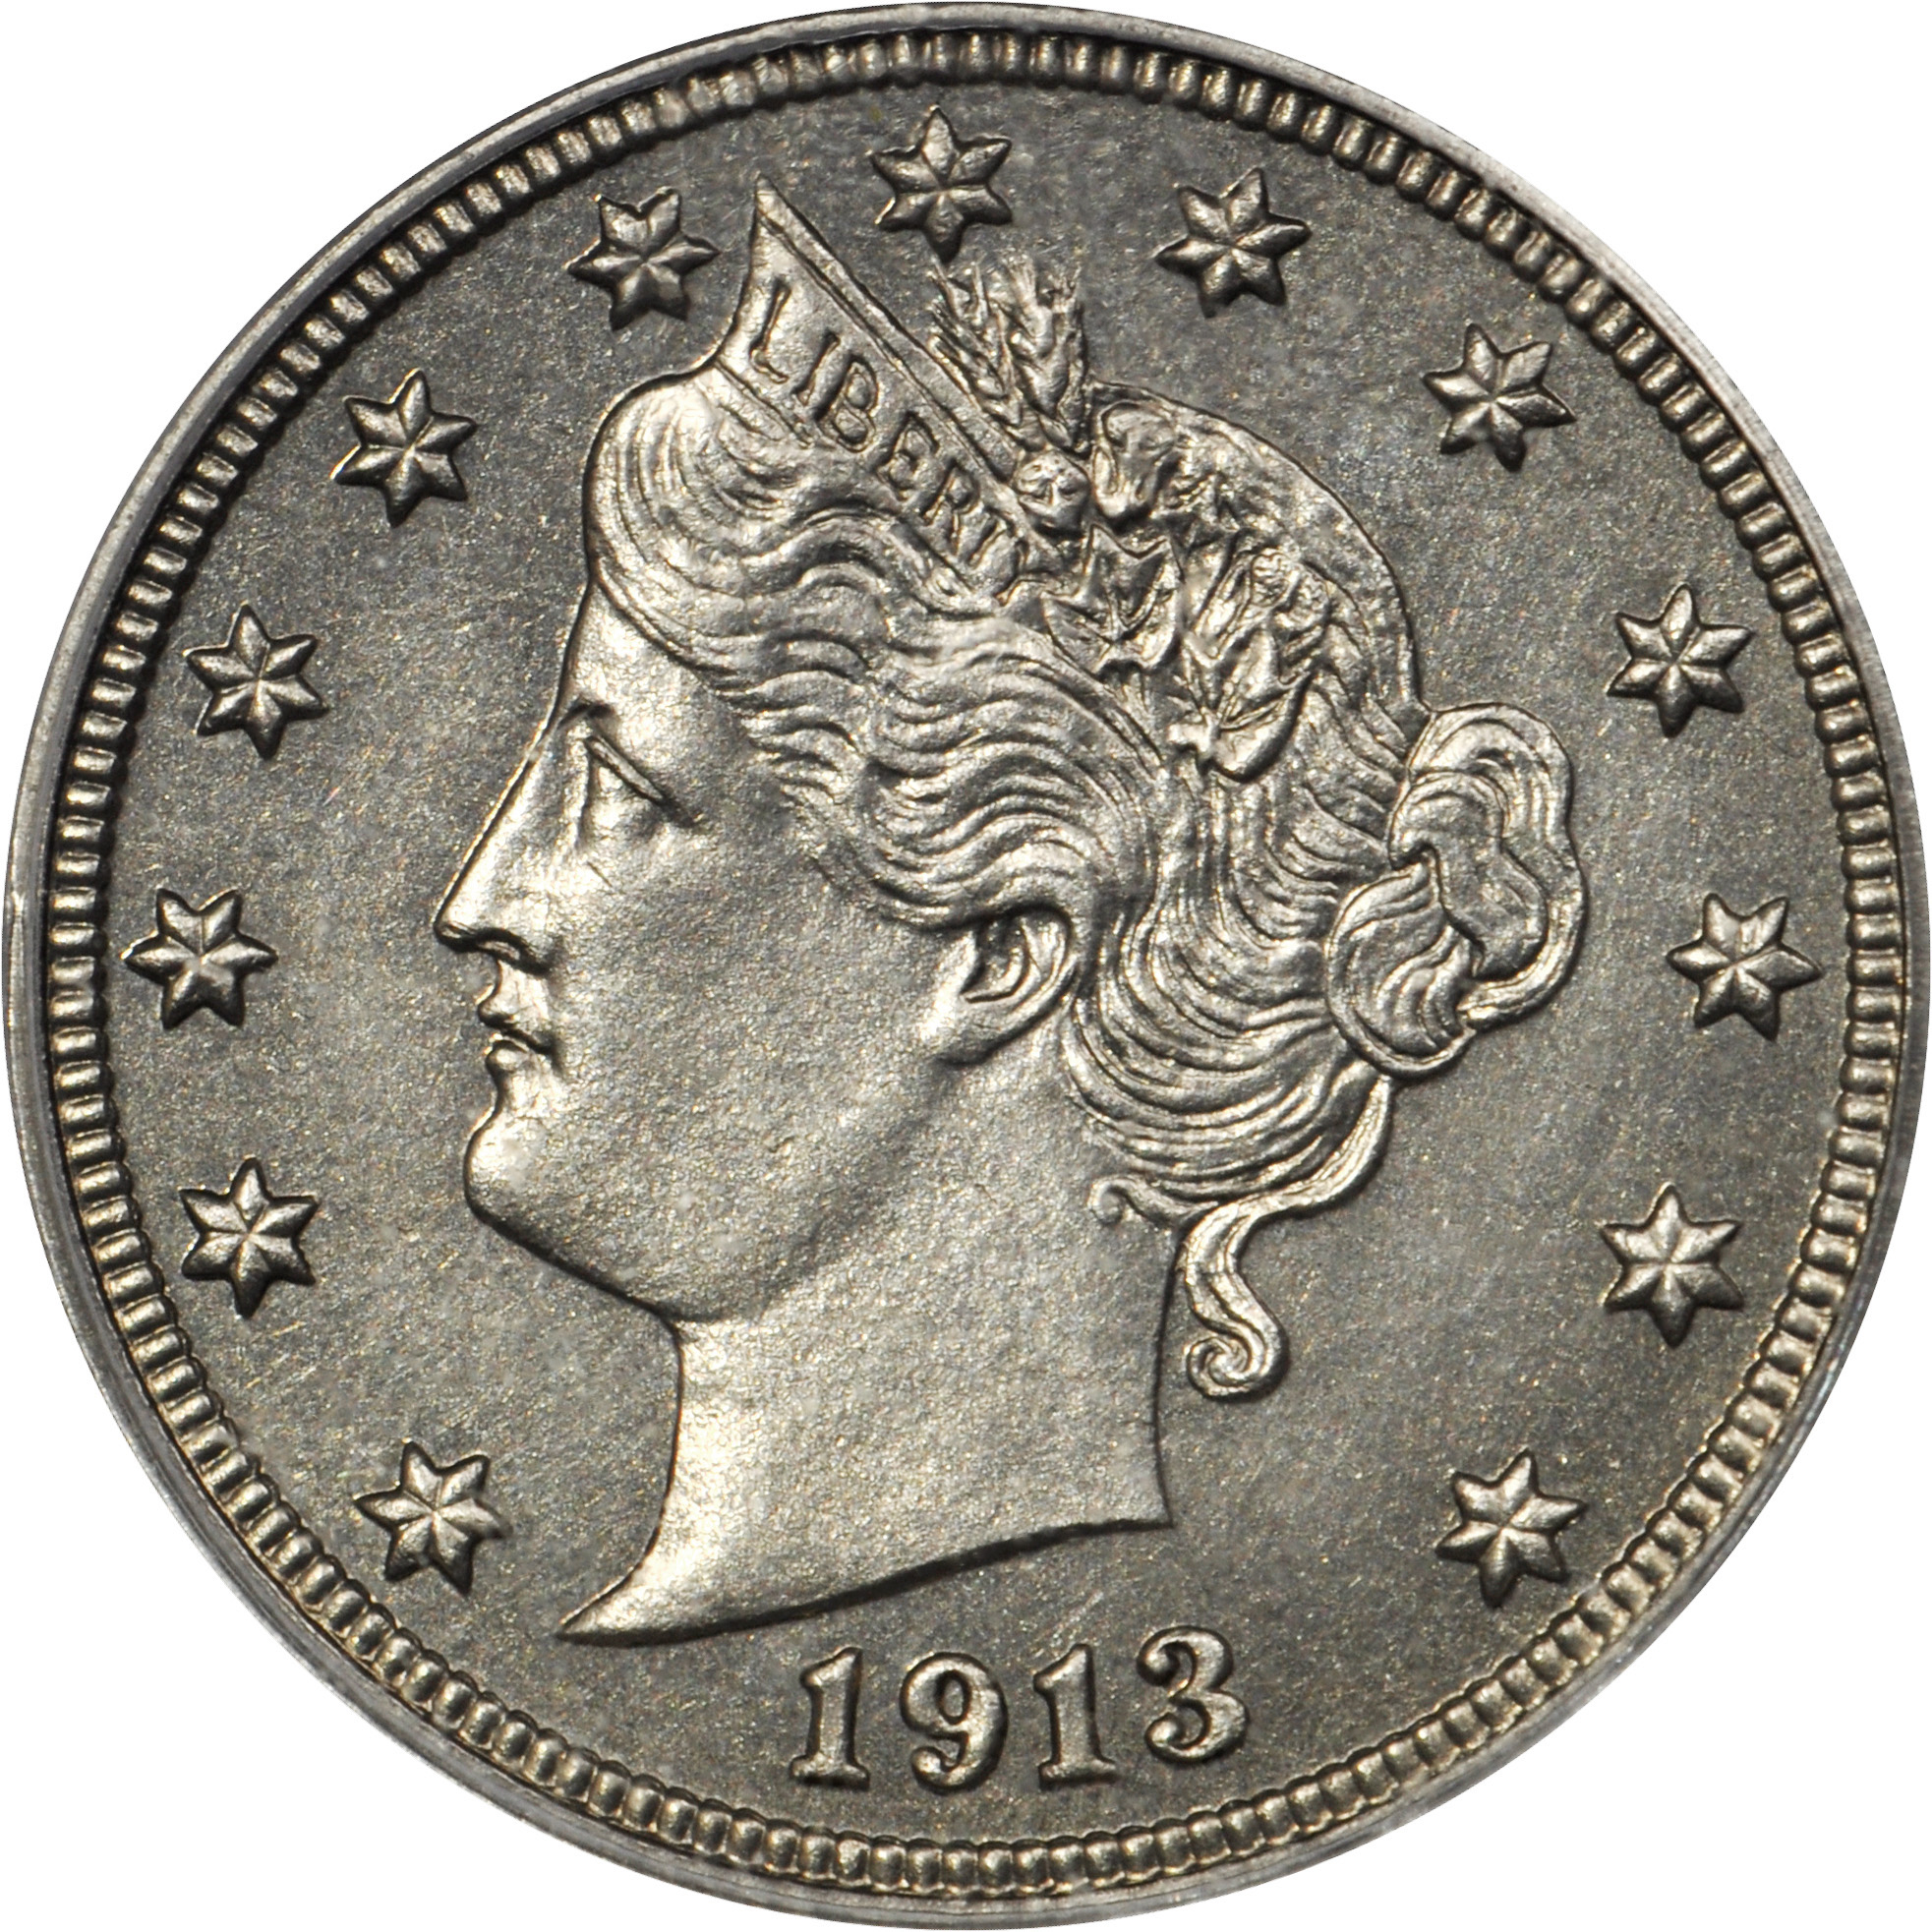 This Eliasberg 1913 Liberty Head nickel sold for $4.5 million, a world auction record for a coin made from a non-precious metal.